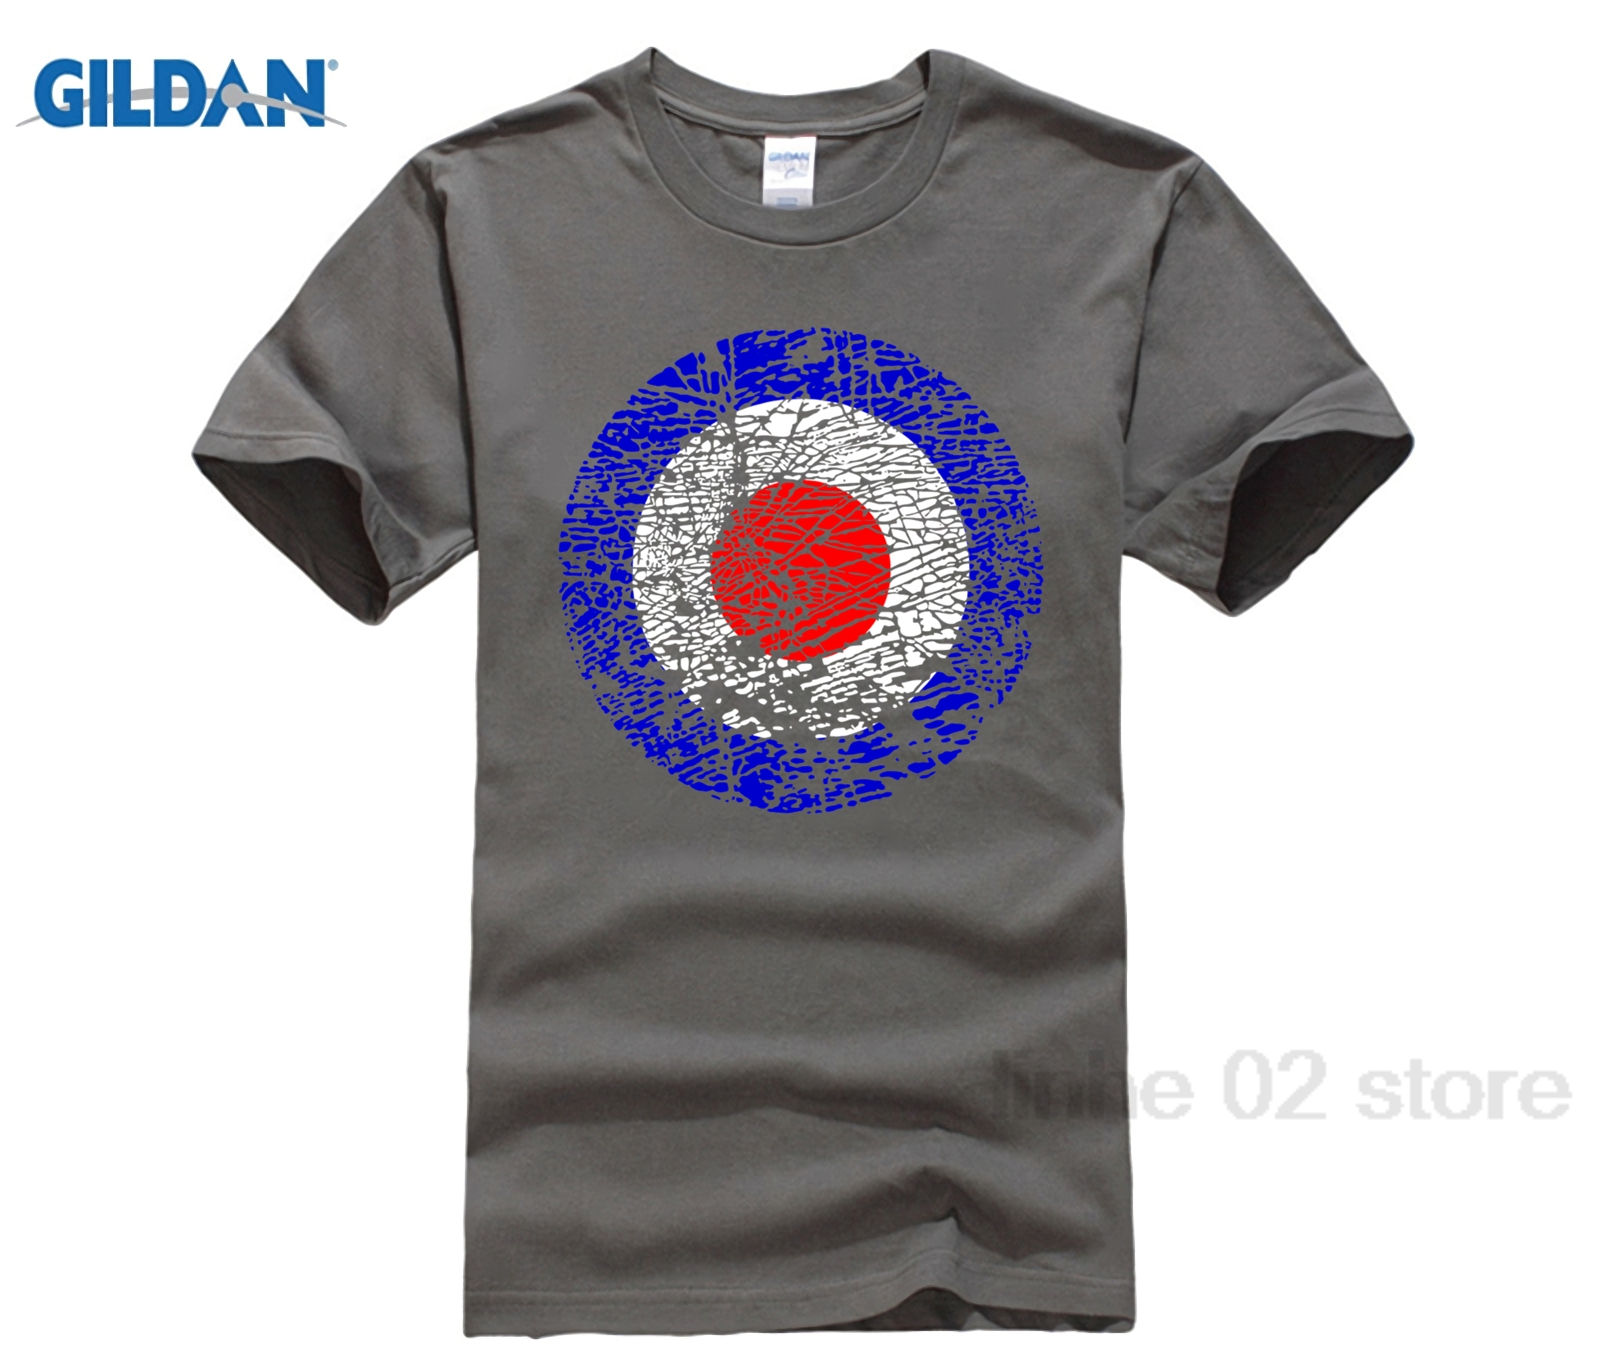 GILDAN Vintage Distressed Mod Target Broken Glass Pop Art T-Shirt sunglasses women T-shirt Mothers Day Ms. T-shirt